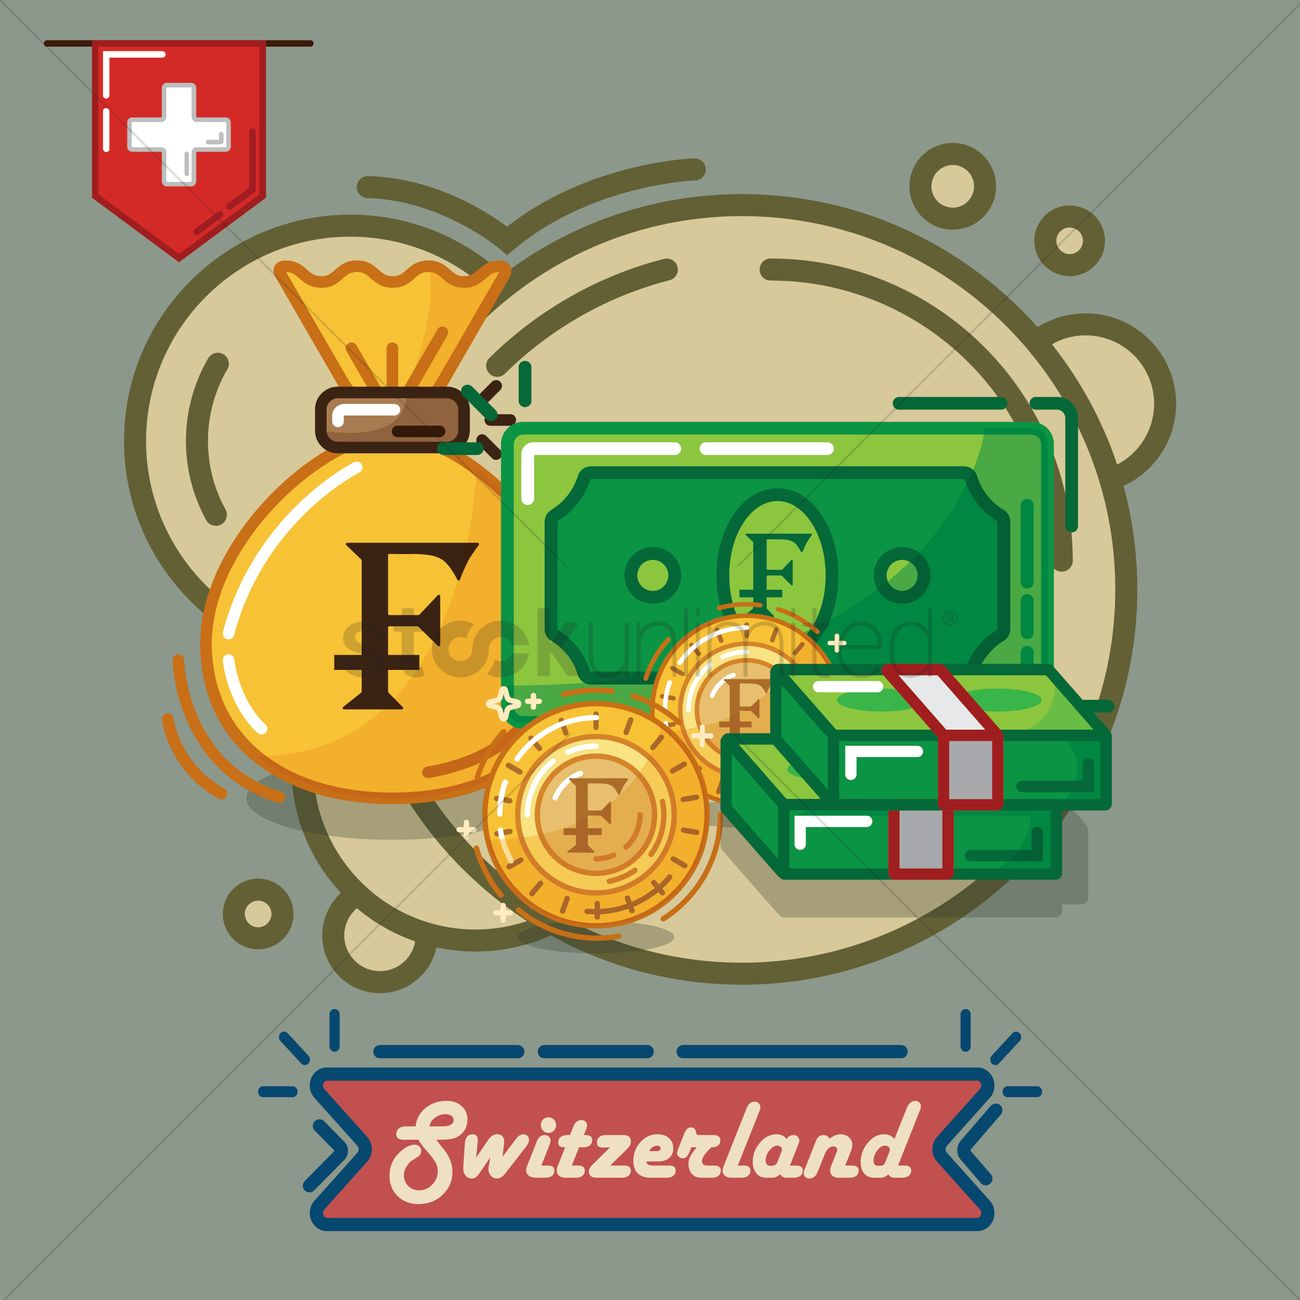 Switzerland franc currency vector image 2019412 stockunlimited switzerland franc currency vector graphic buycottarizona Images